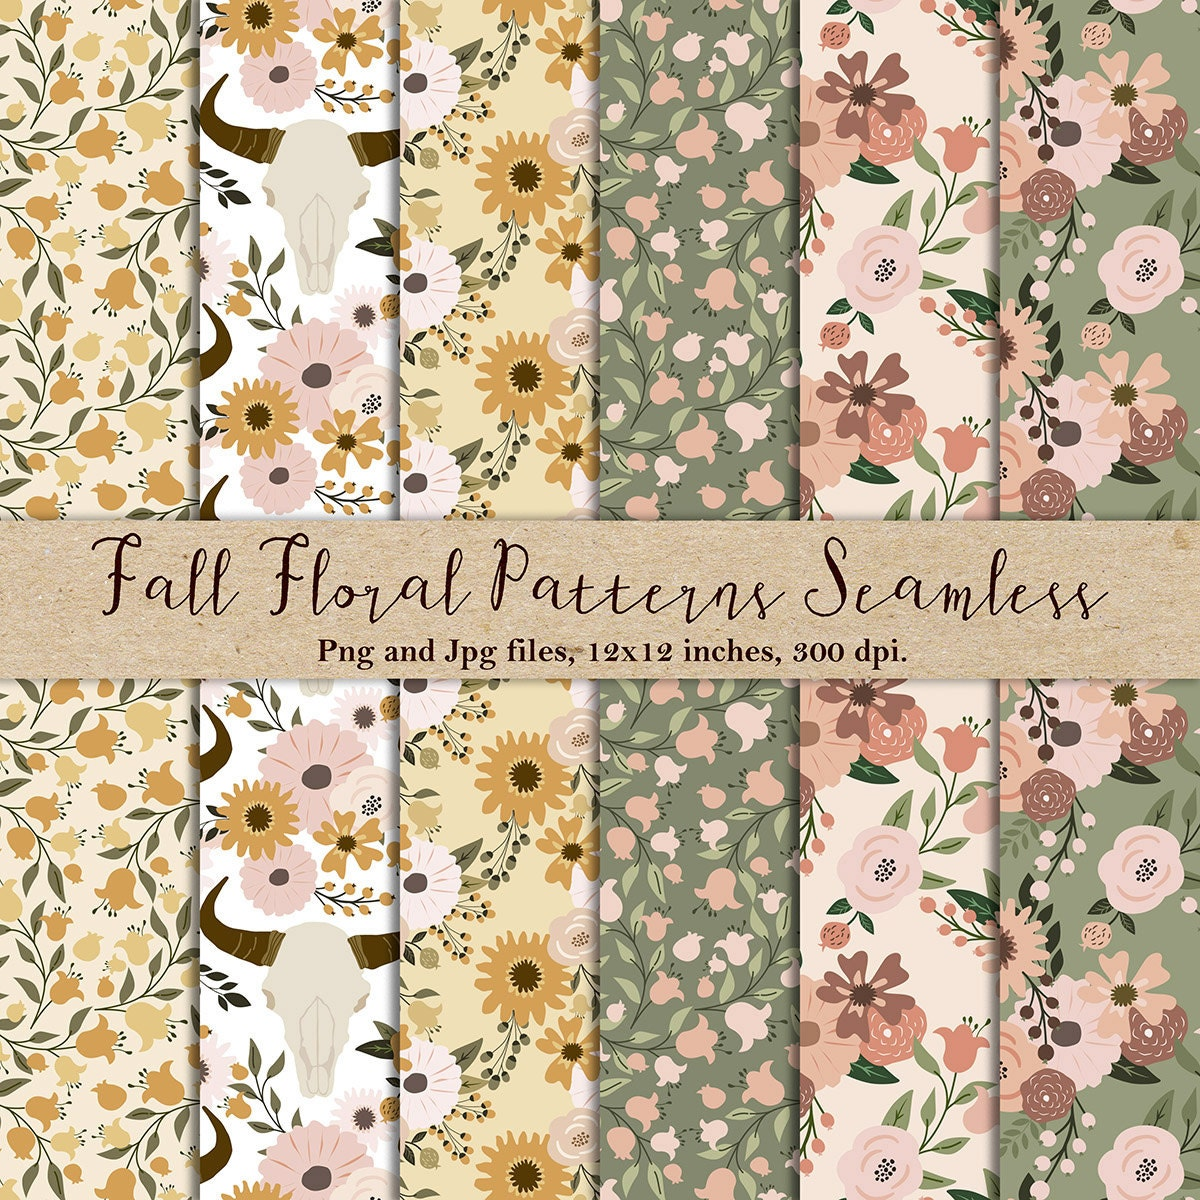 Fall Floral Seamless Patterns Floral Patterns Floral